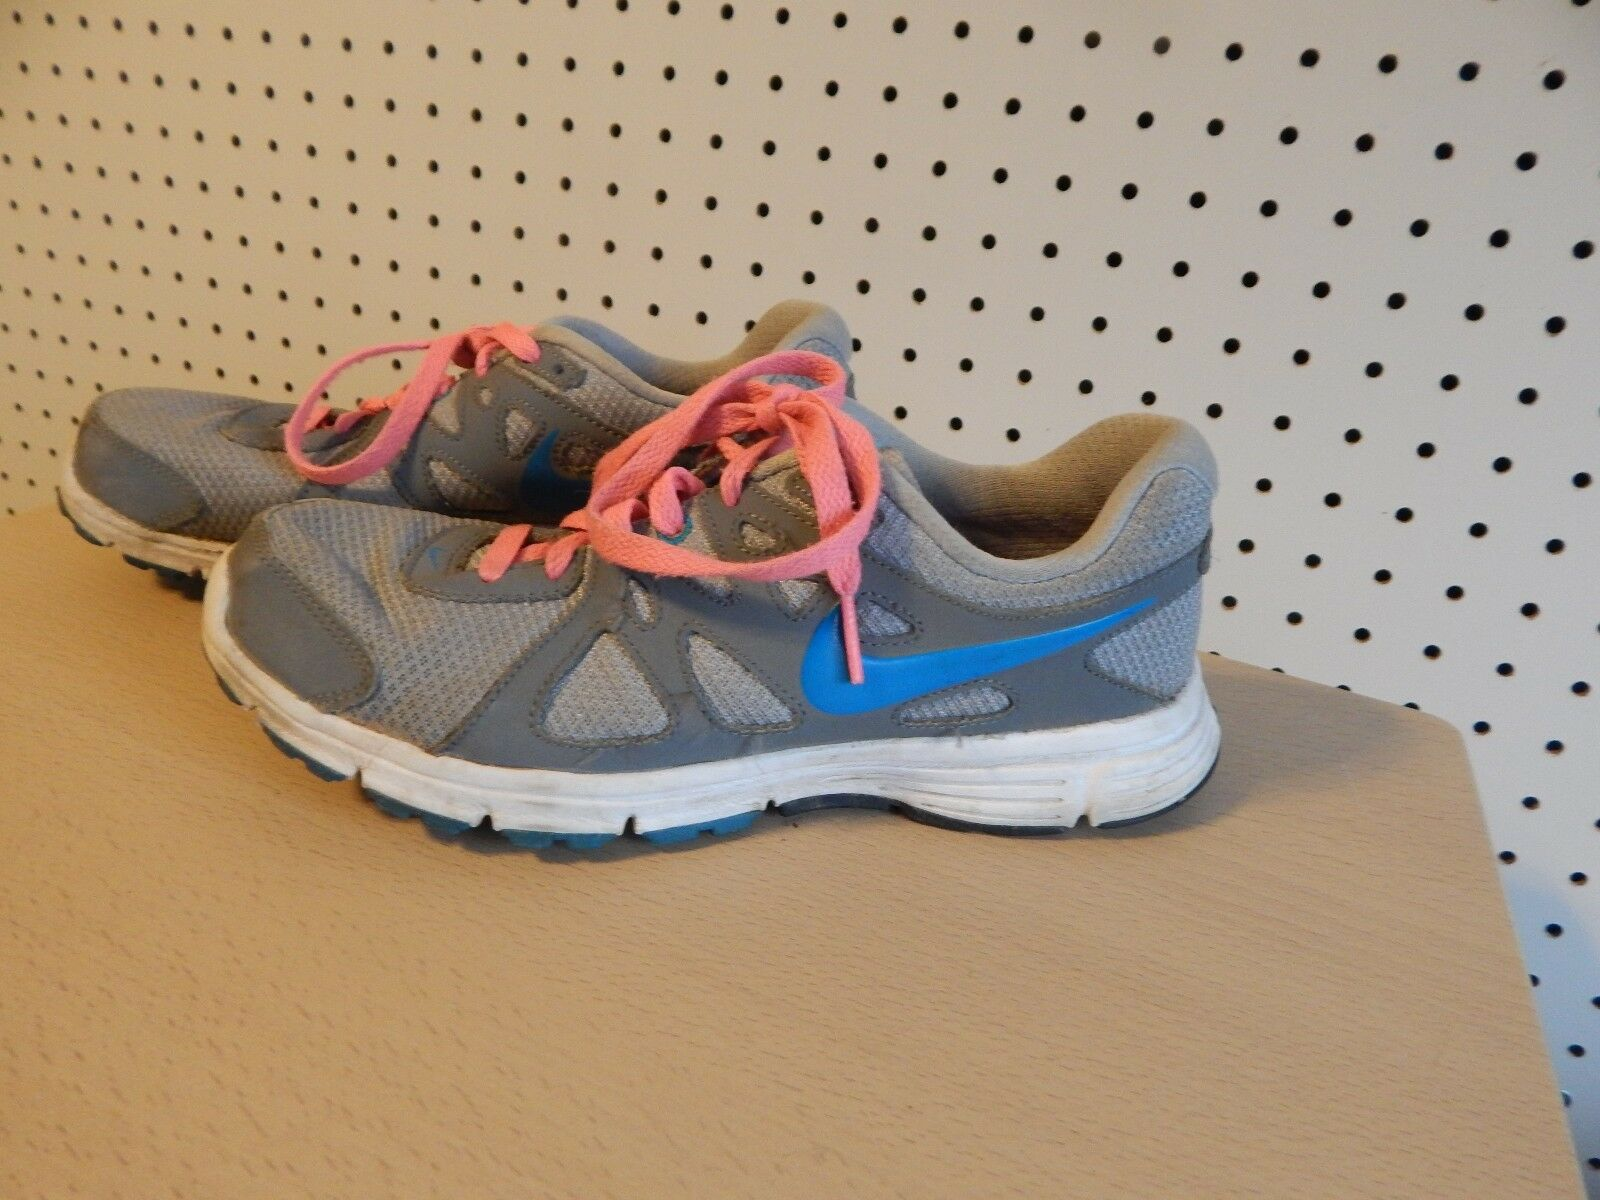 Womens Nike Revolution 2 Running shoes - size 7 - 554900-006 - gray pink teal Seasonal price cuts, discount benefits